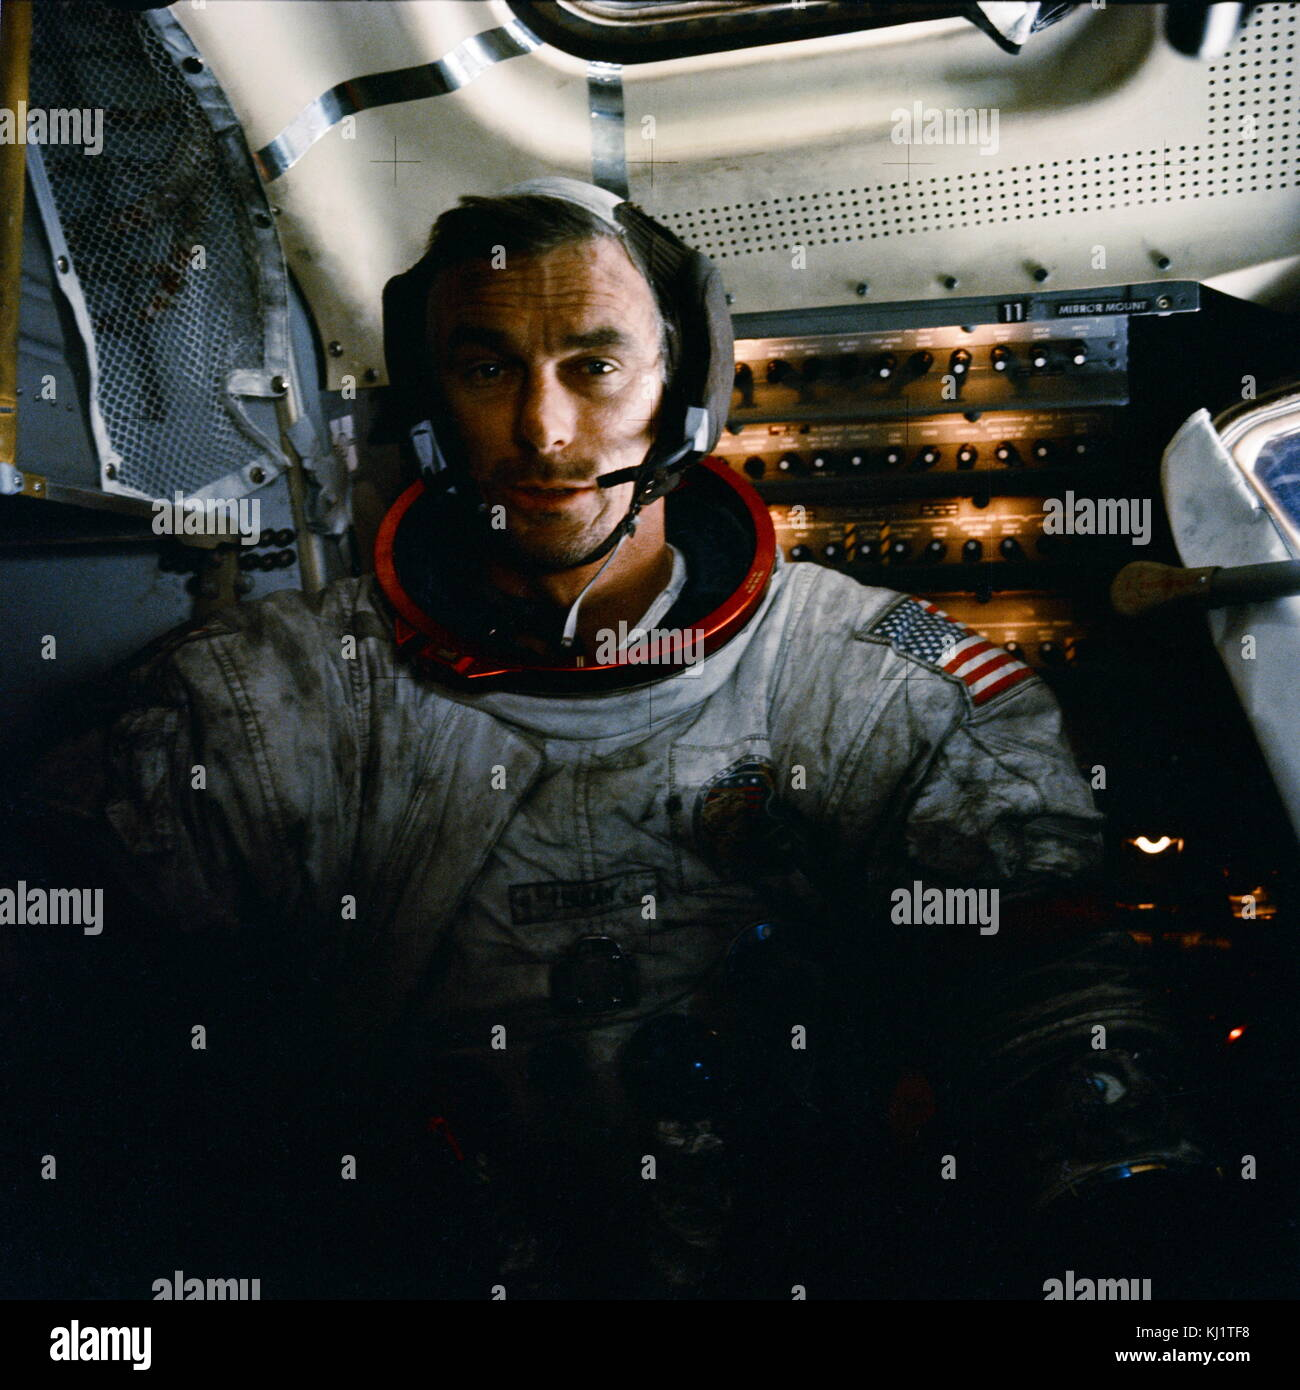 Apollo 17 mission commander Eugene Cernan inside the lunar module on the moon after his second moonwalk of the mission. - Stock Image